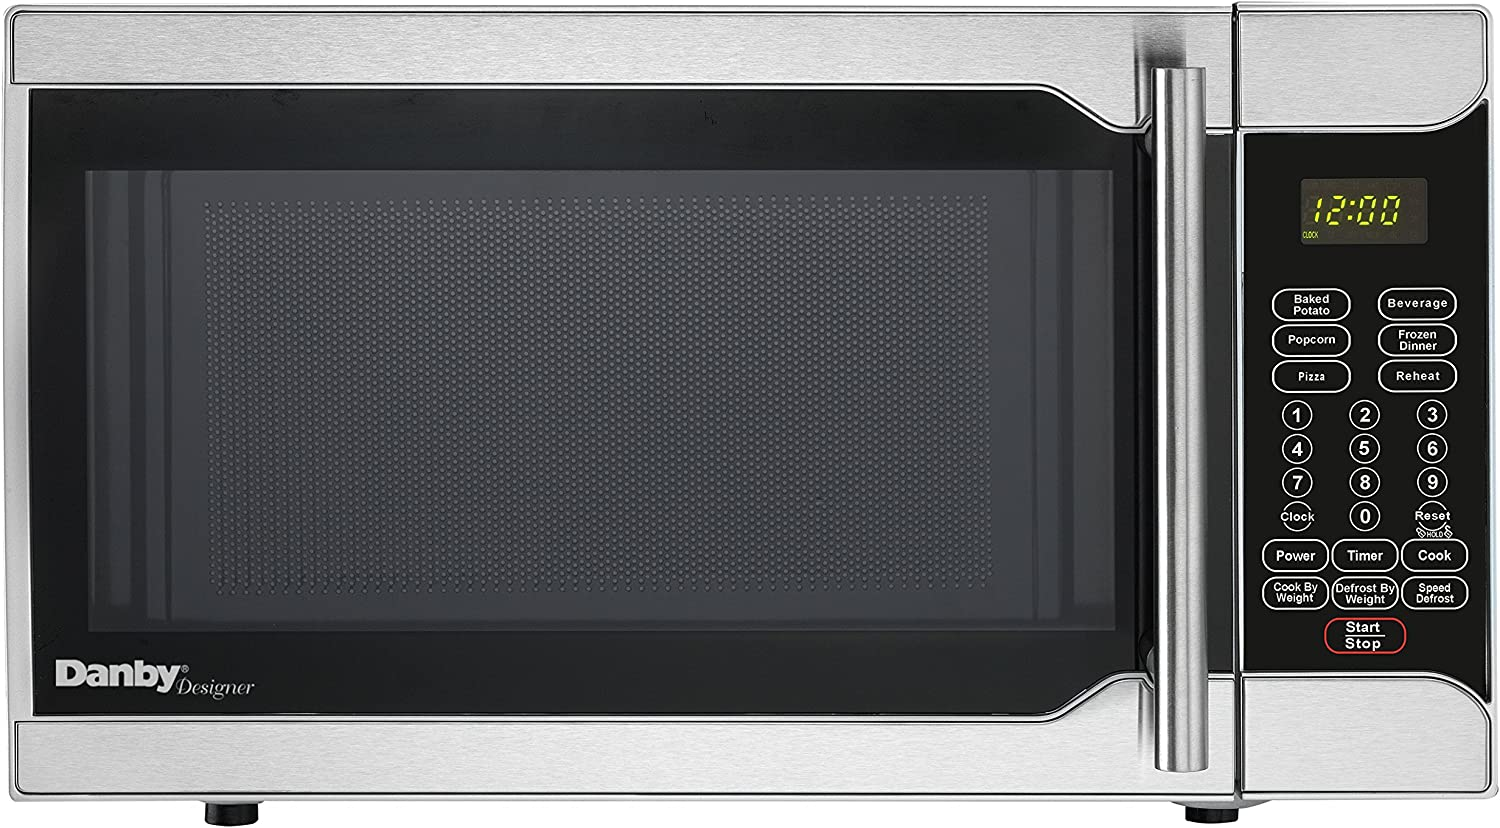 Danby DMW07A2SSDD Microwave Oven